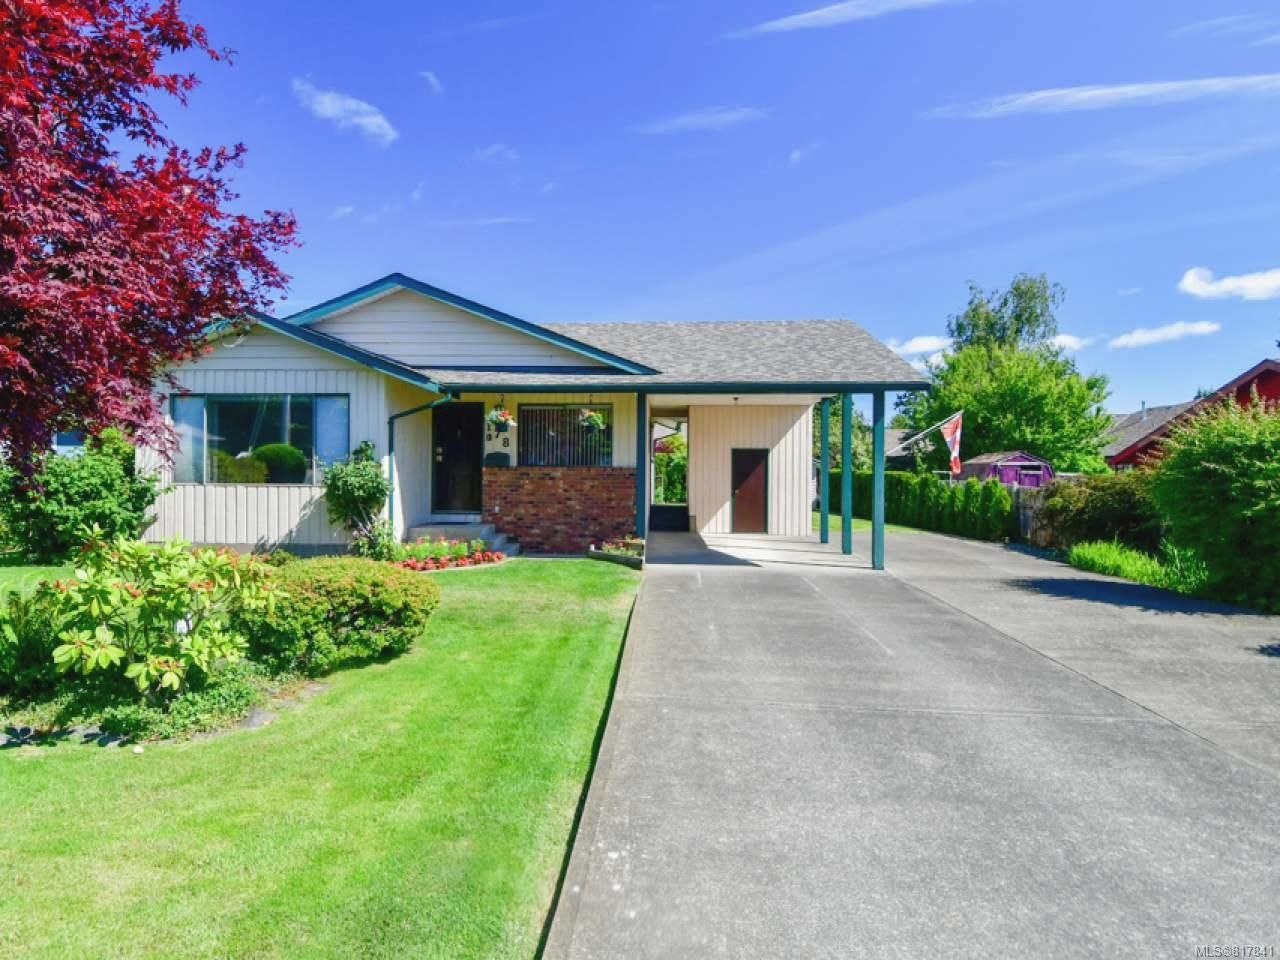 Main Photo: 178 Dahl Rd in CAMPBELL RIVER: CR Willow Point House for sale (Campbell River)  : MLS®# 817841